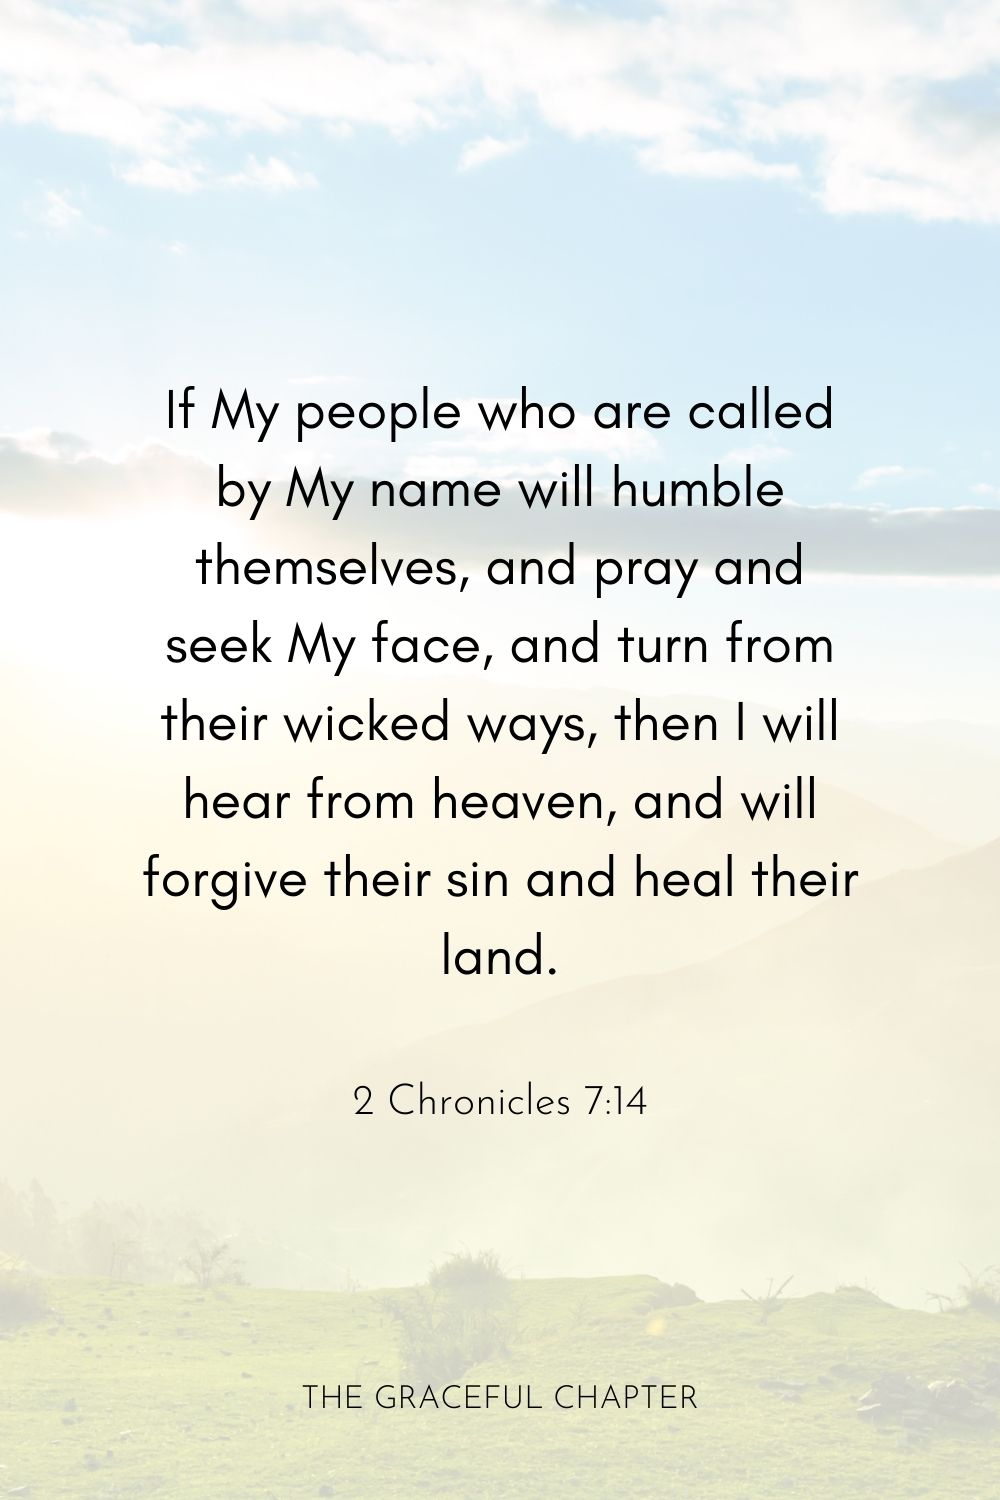 If My people who are called by My name will humble themselves, and pray and seek My face, and turn from their wicked ways, then I will hear from heaven and will forgive their sin and heal their land.  2 Chronicles 7:14